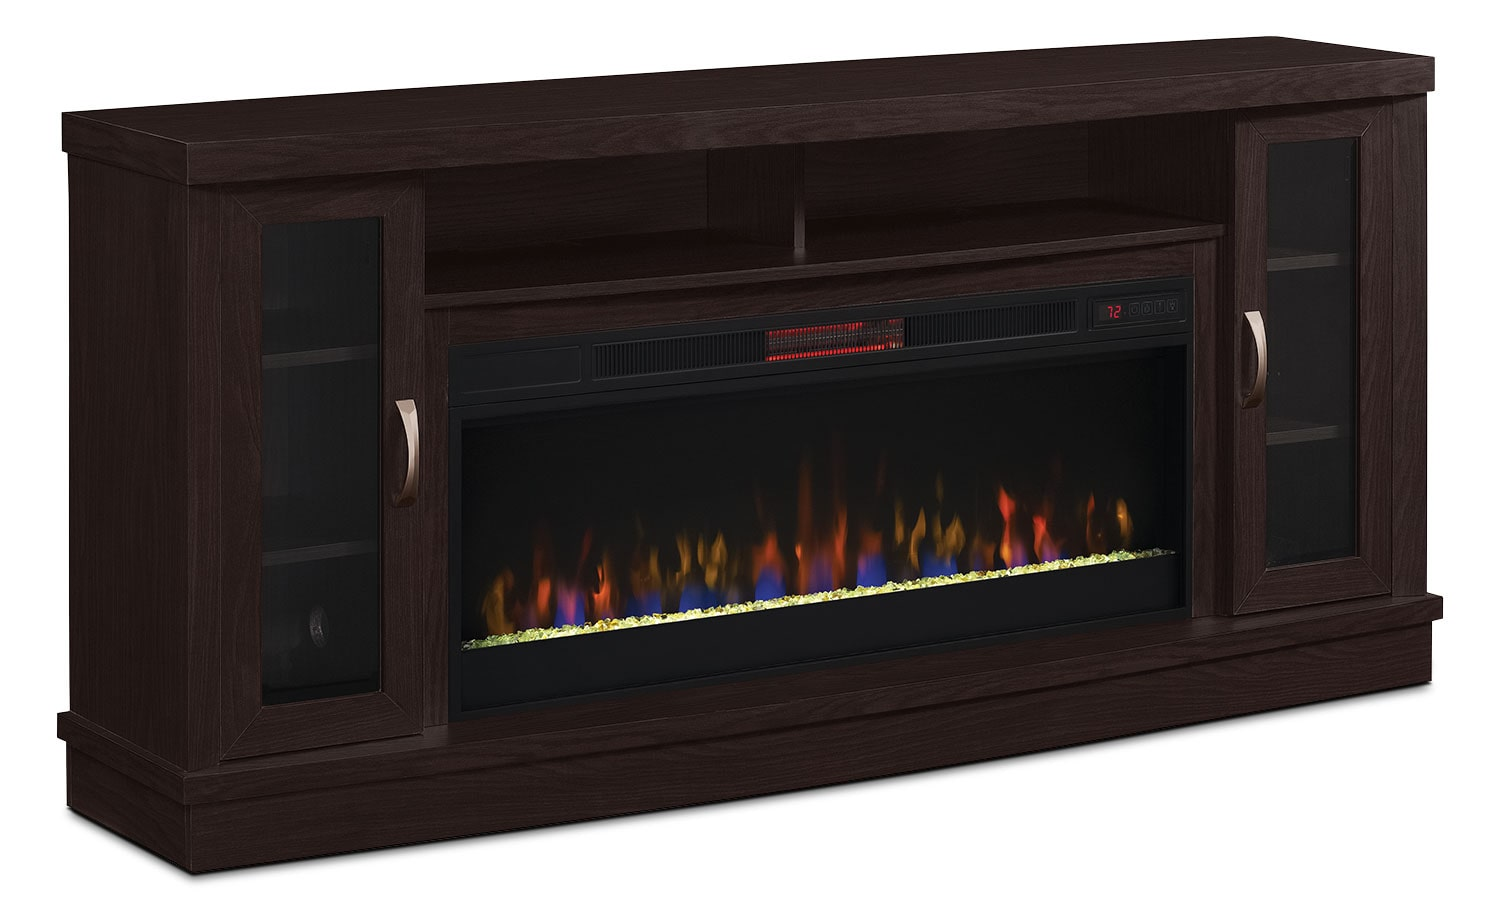 Hutchinson 70 Stand With Glass Ember Log Or Rock Firebox The Brick